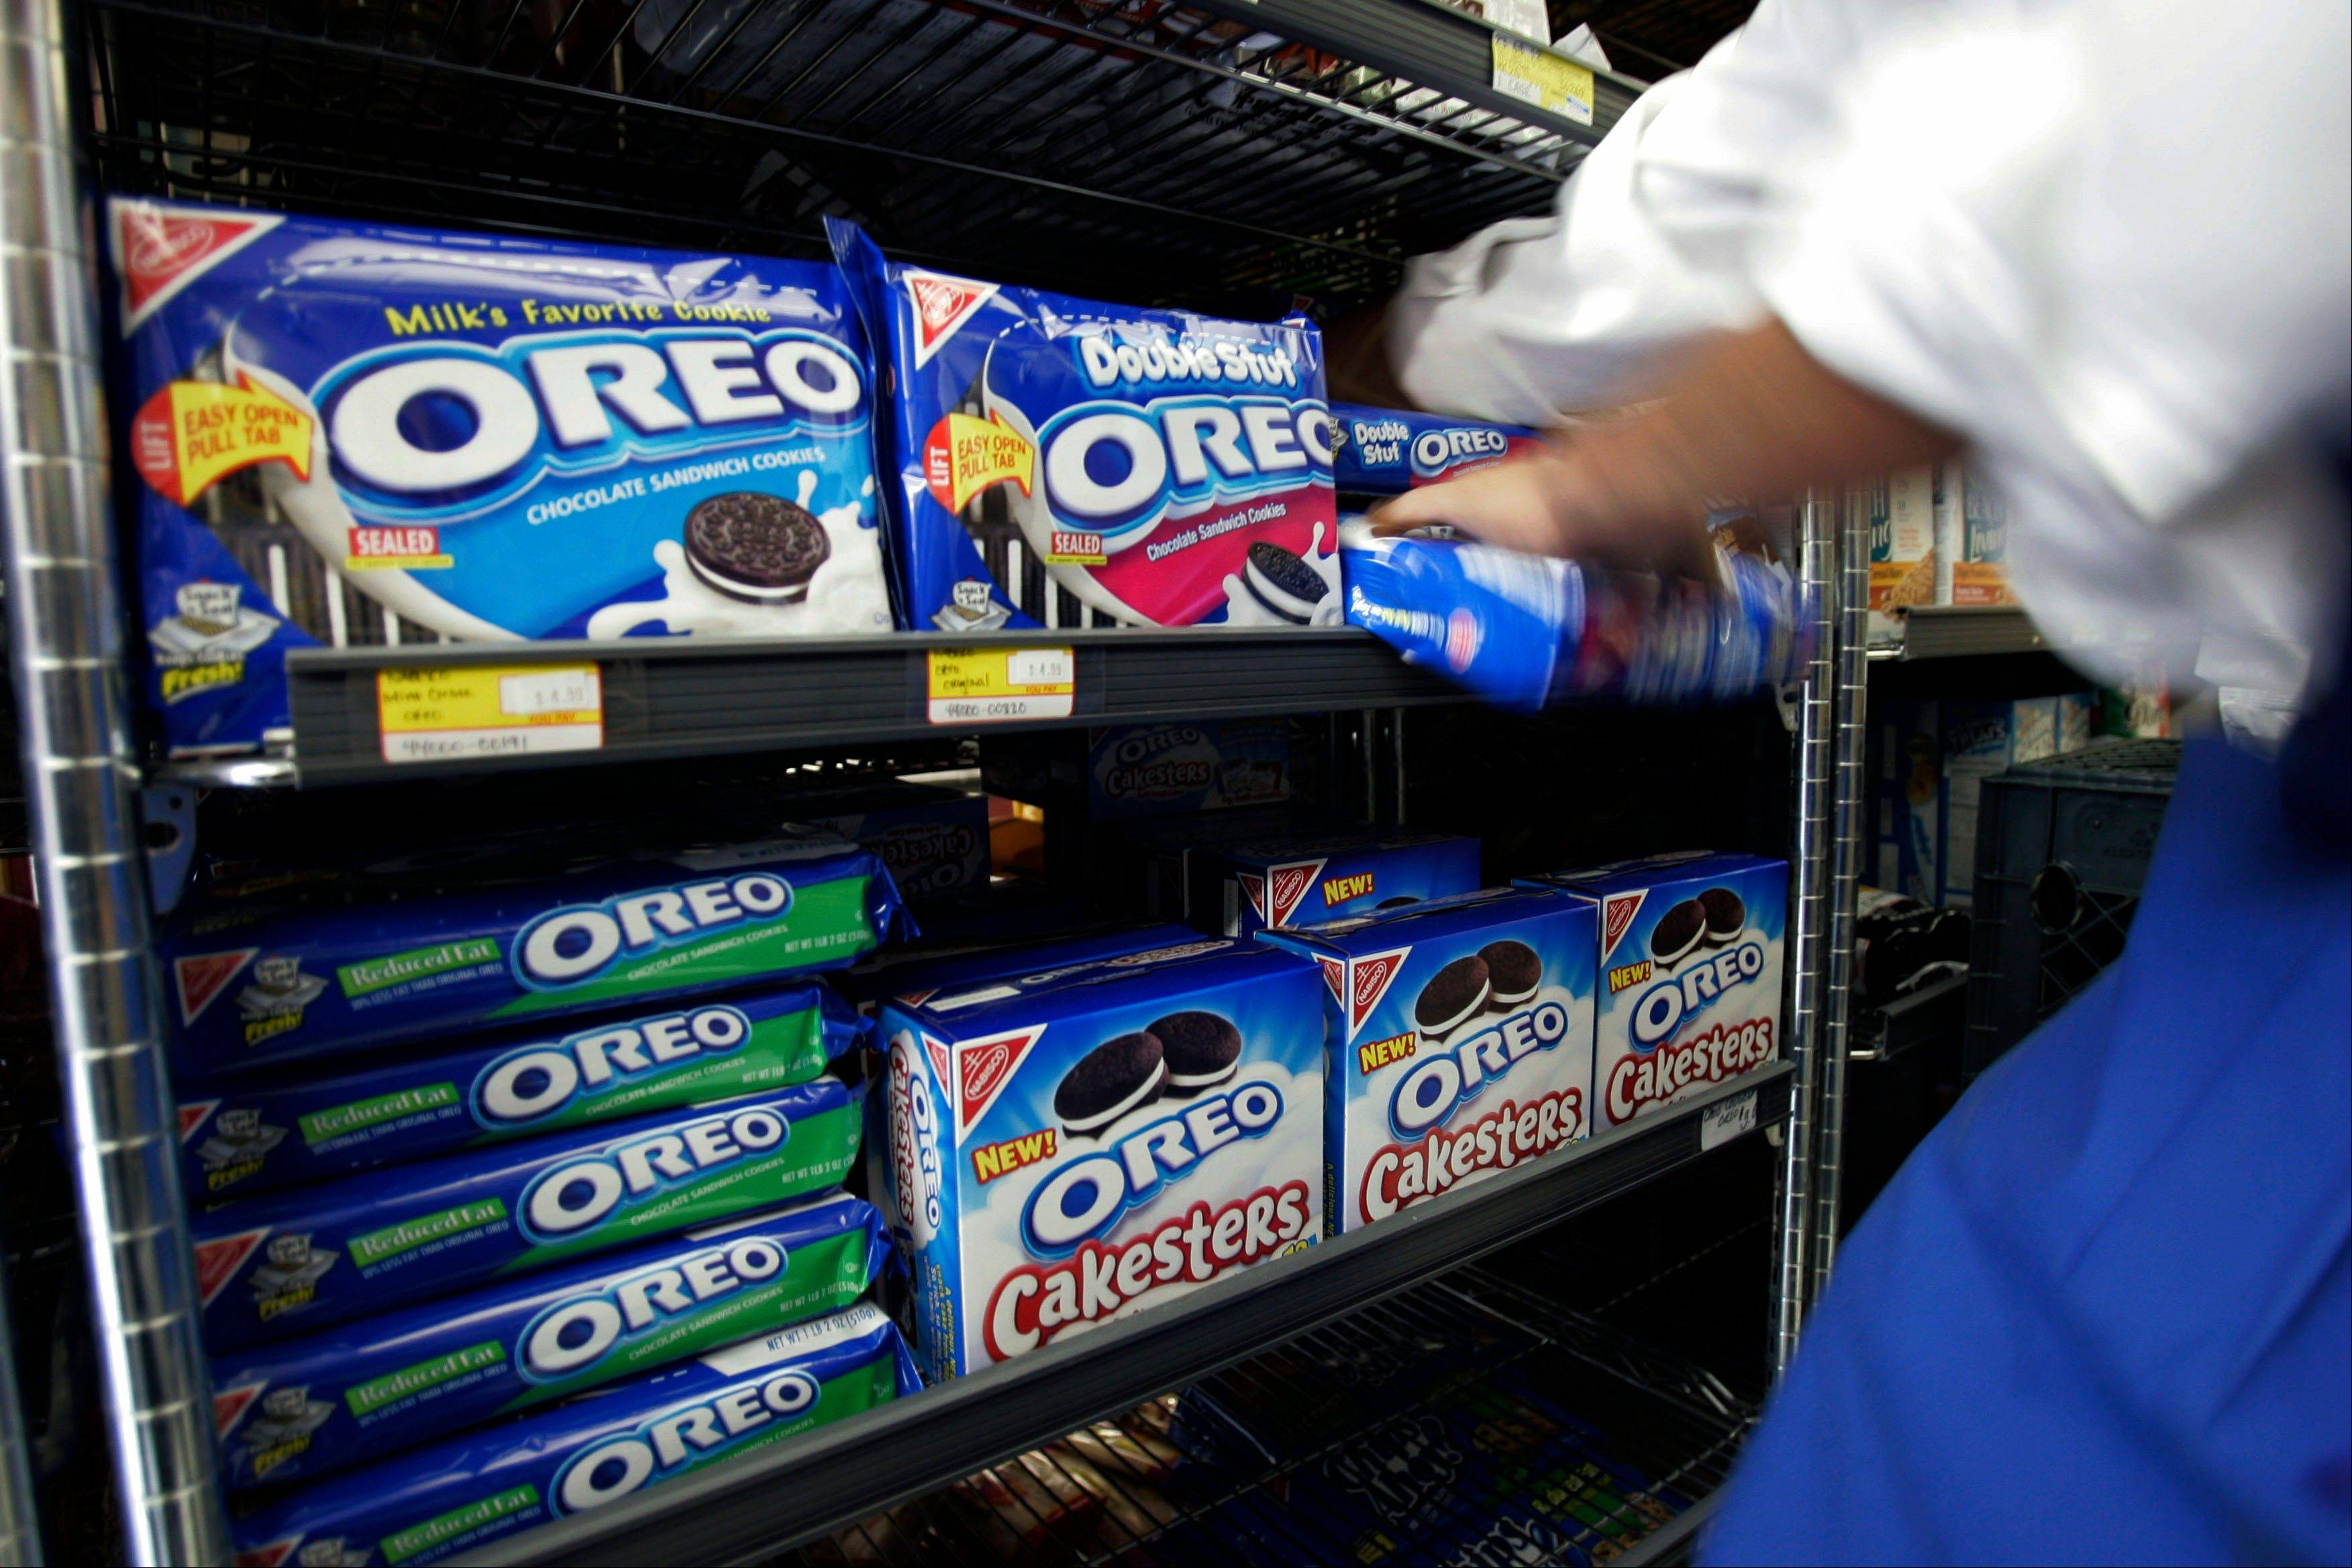 A worker fixes the display of Oreo cookies at a market in Palo Alto, Calif.